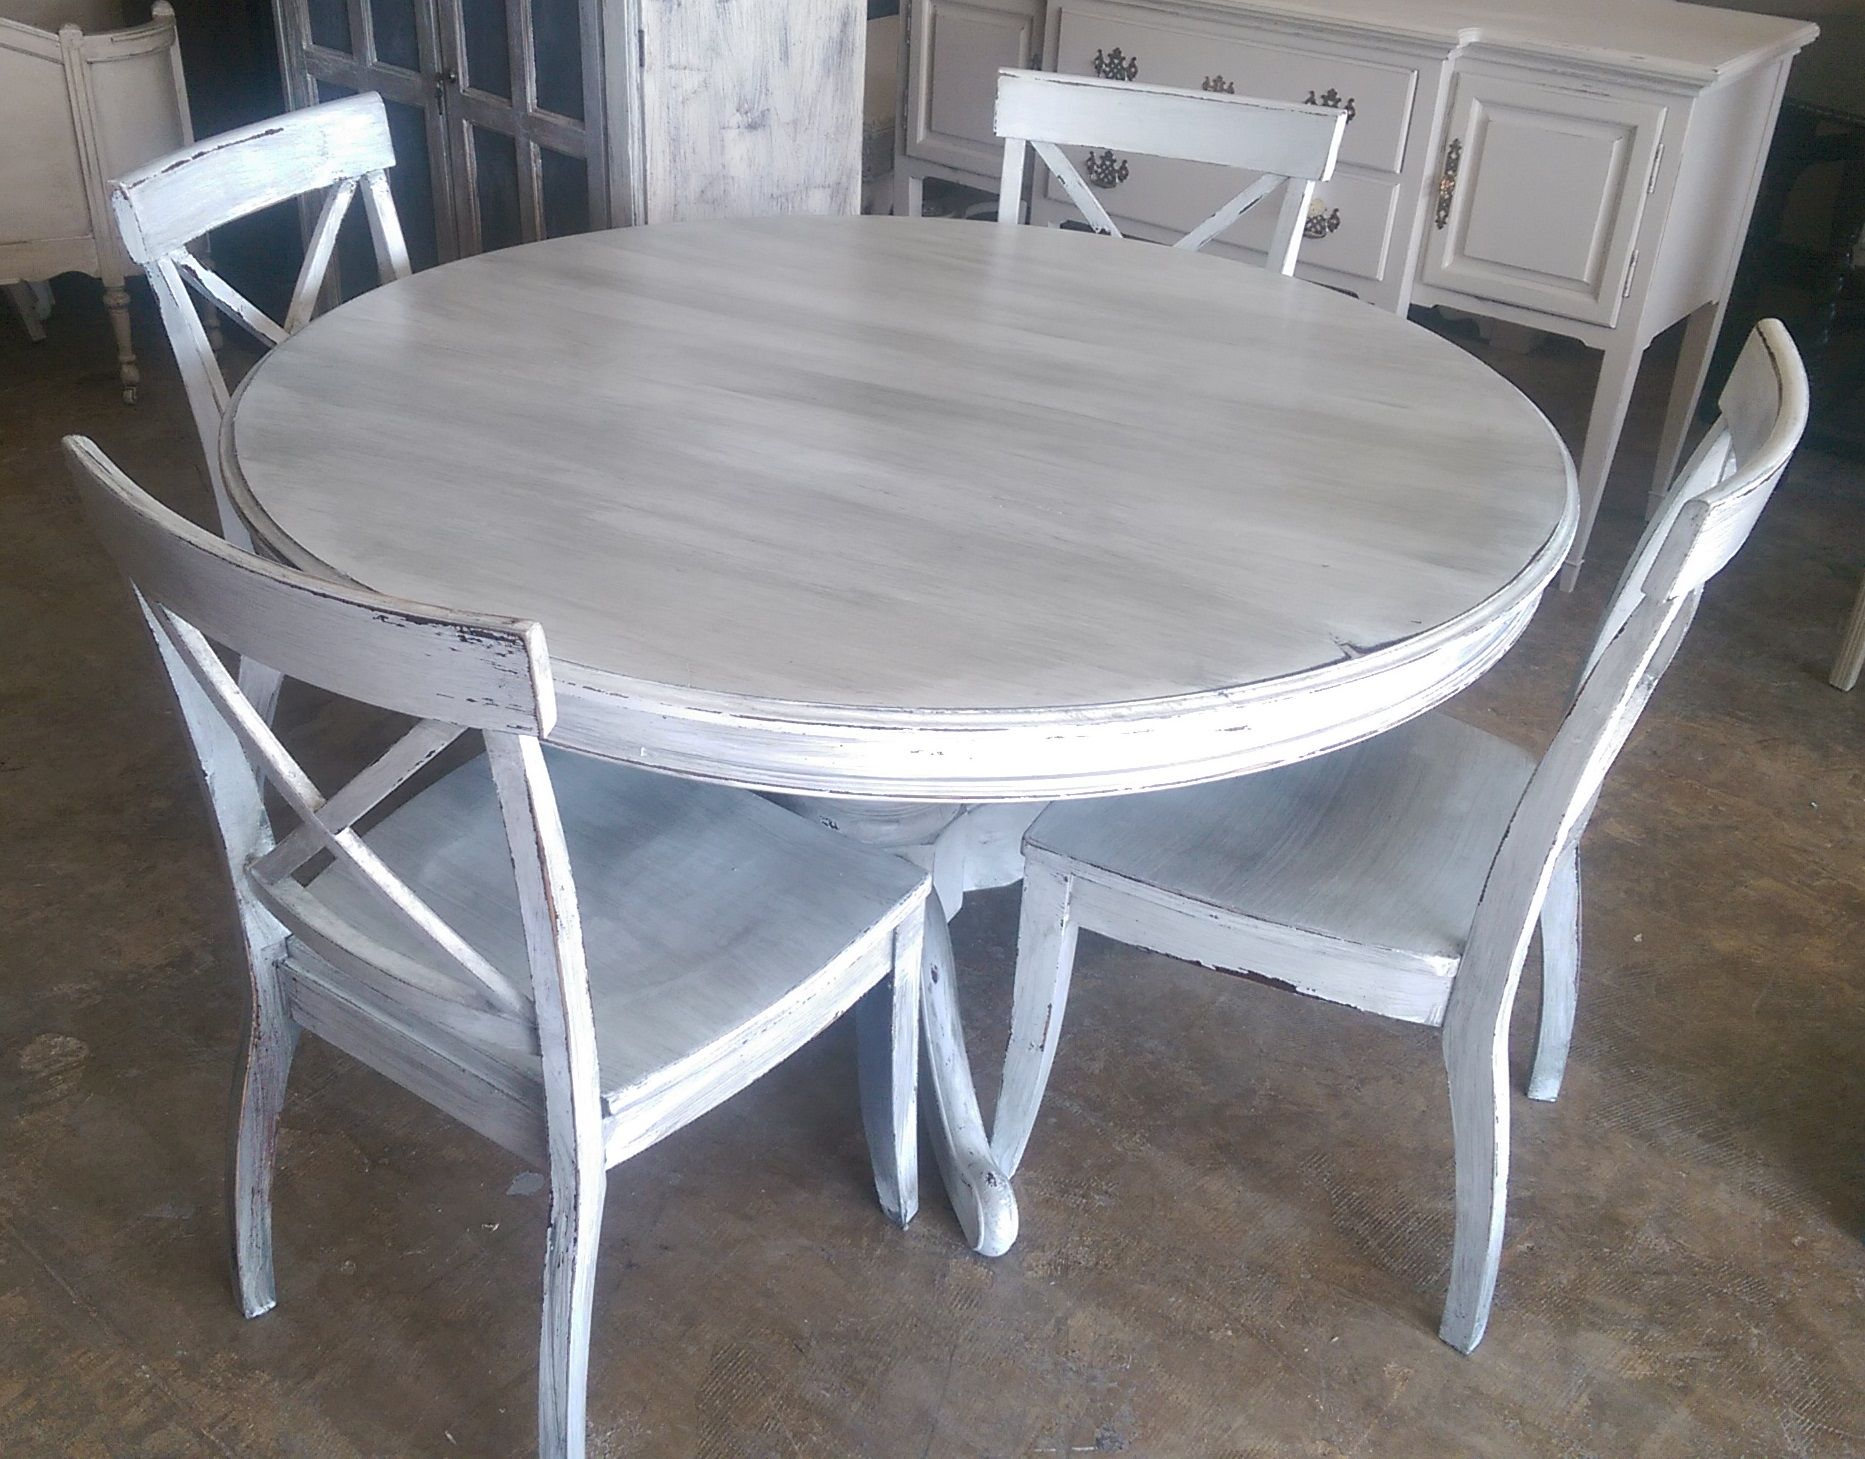 Here Is A 54 Round Table And Four Chairs I Painted It White With